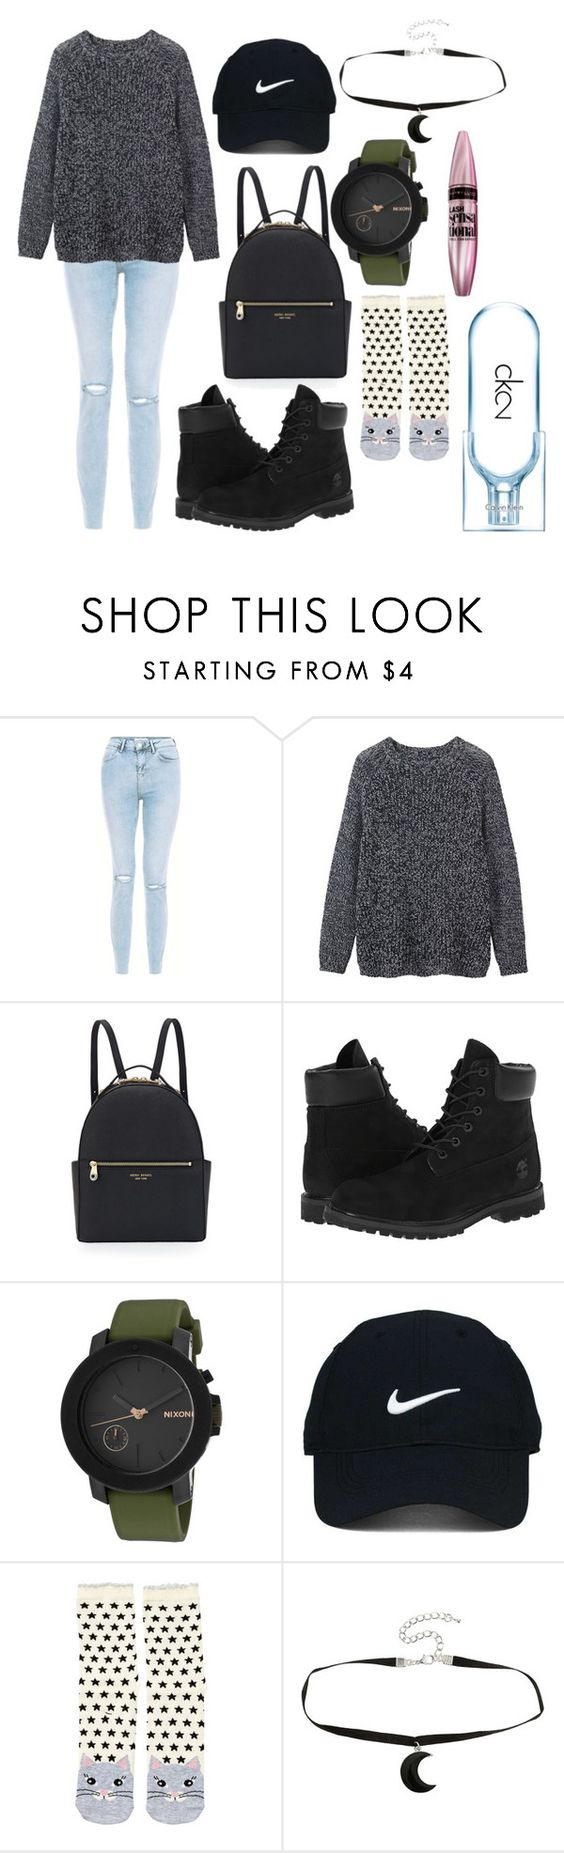 """A"" by hannahjerao on Polyvore featuring Toast, Henri Bendel, Timberland, Nixon, Nike Golf, Accessorize, Calvin Klein and Maybelline"